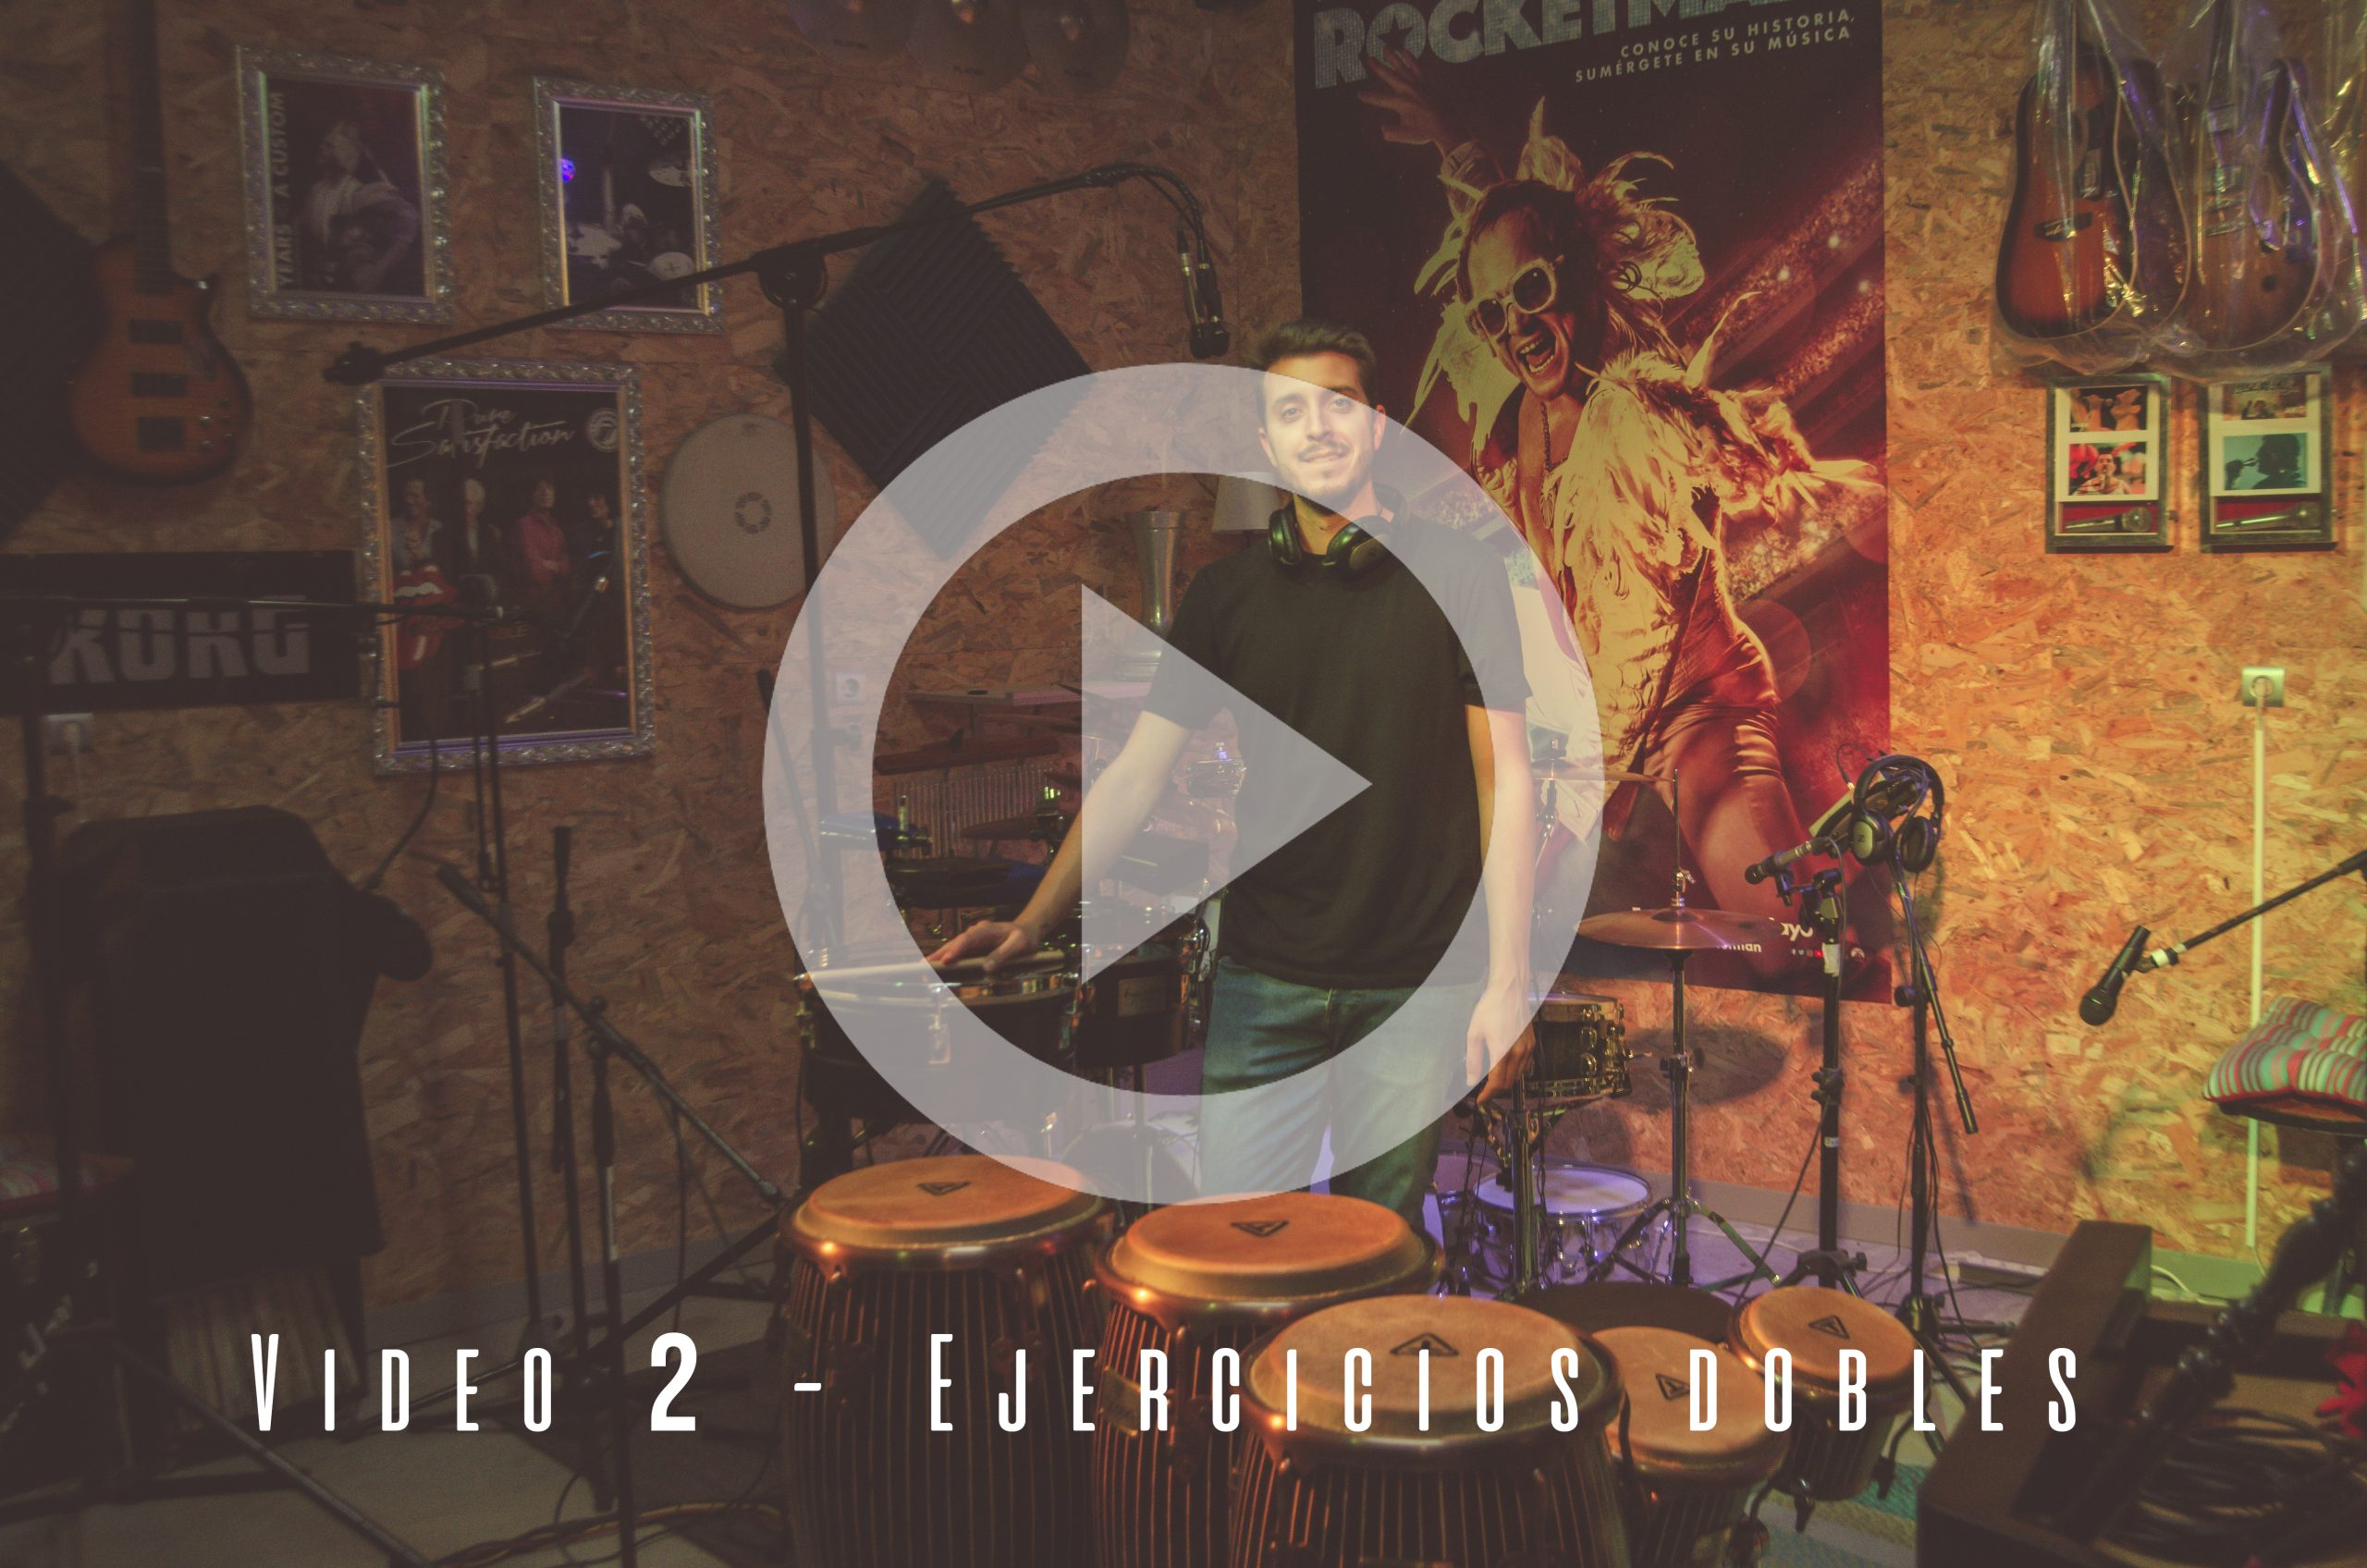 Video 2 - Ejercicios dobles